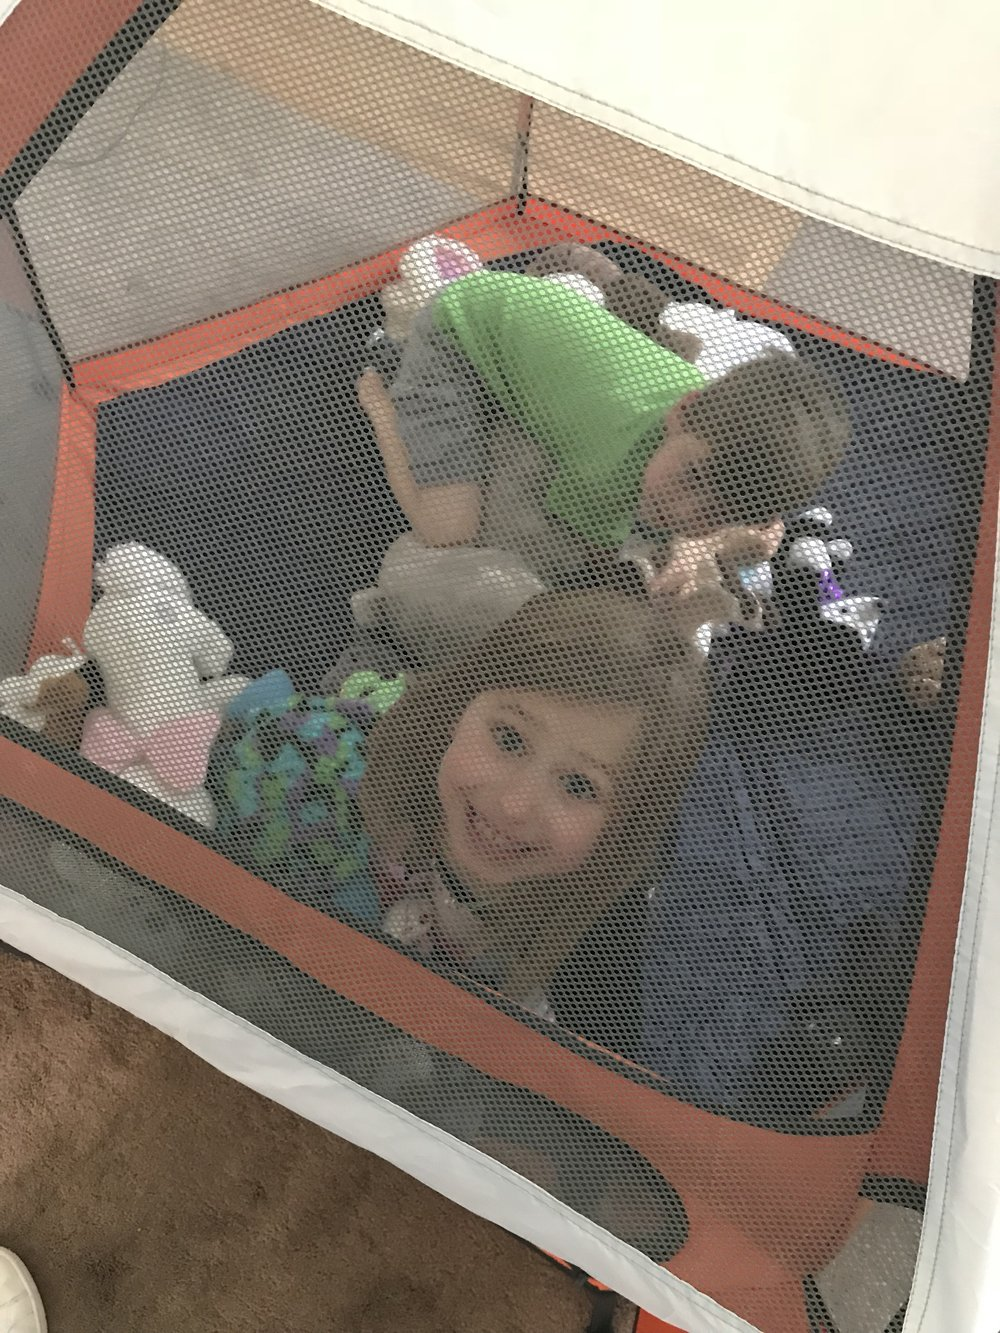 My kids immediately hopped in the Pop N Go — stuffed animals and all — as soon as I got it out of the box.